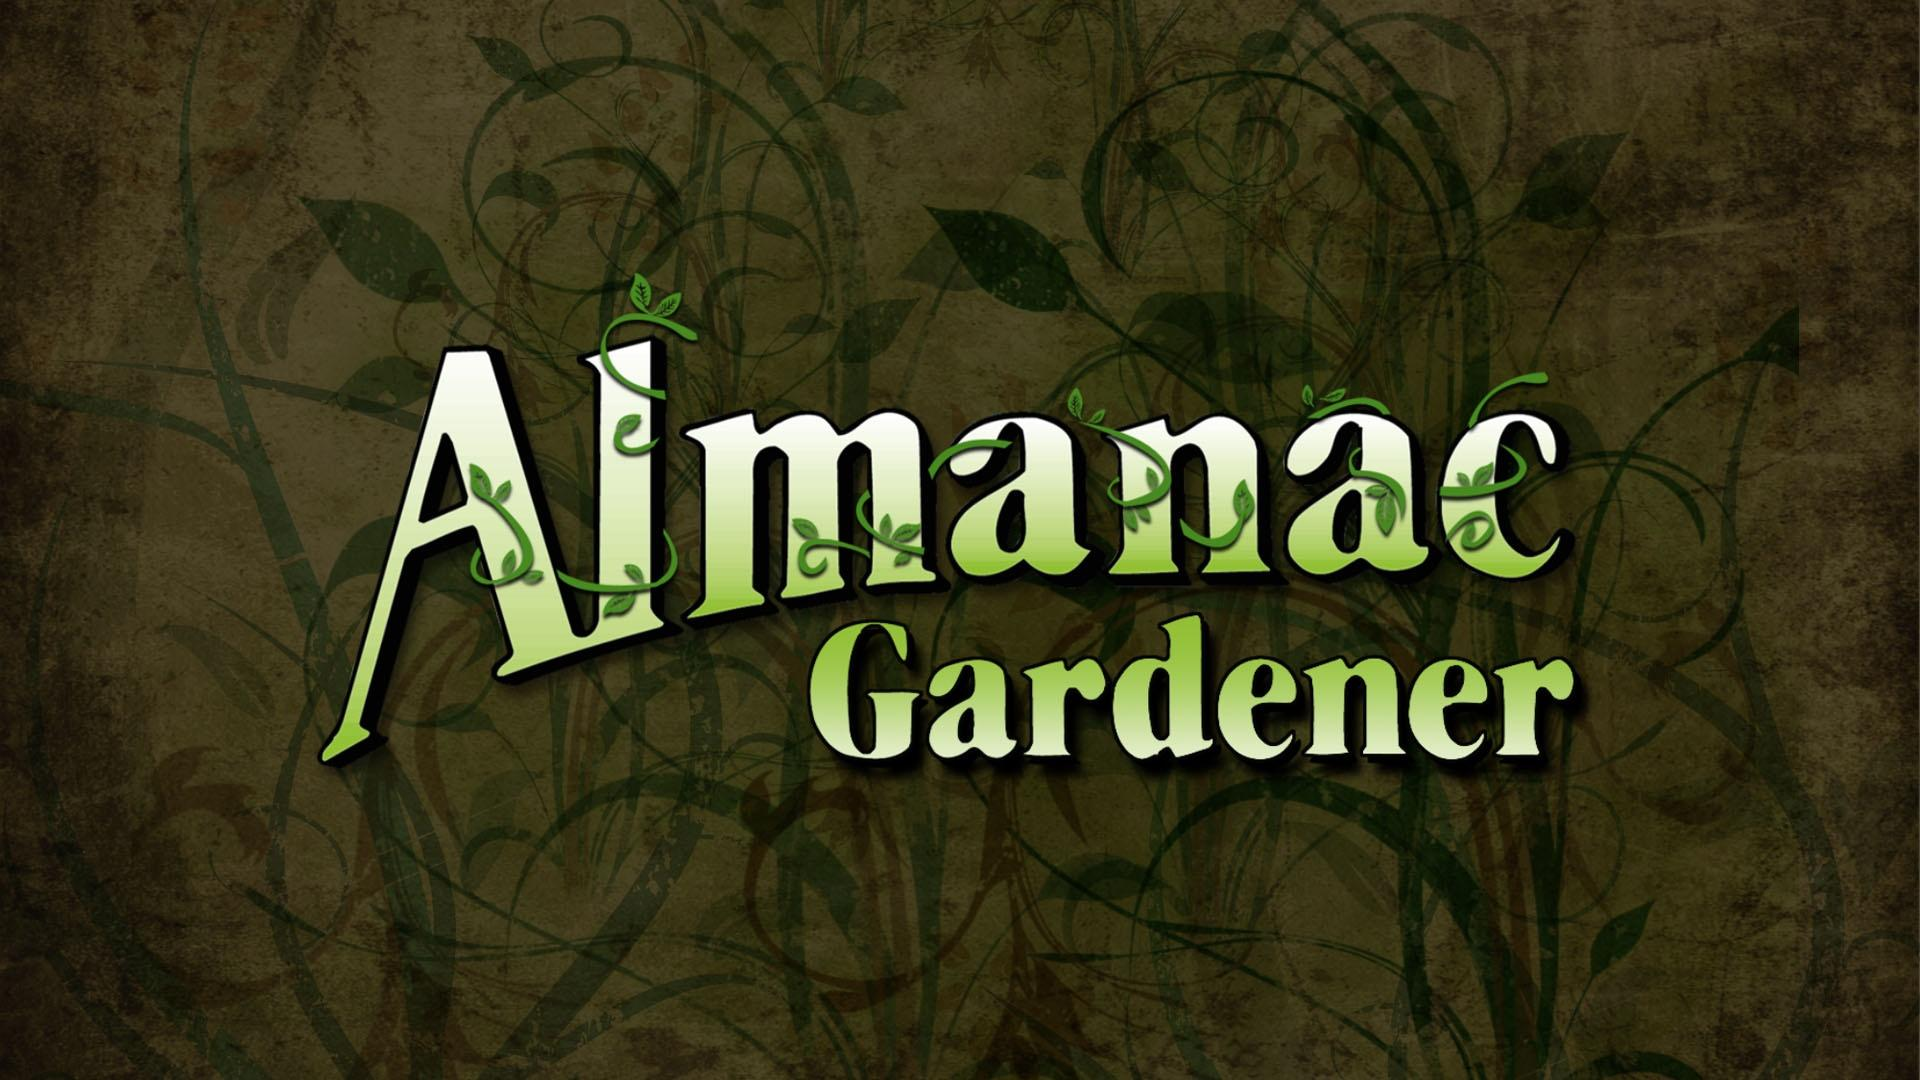 Learn More about Almanac Gardener